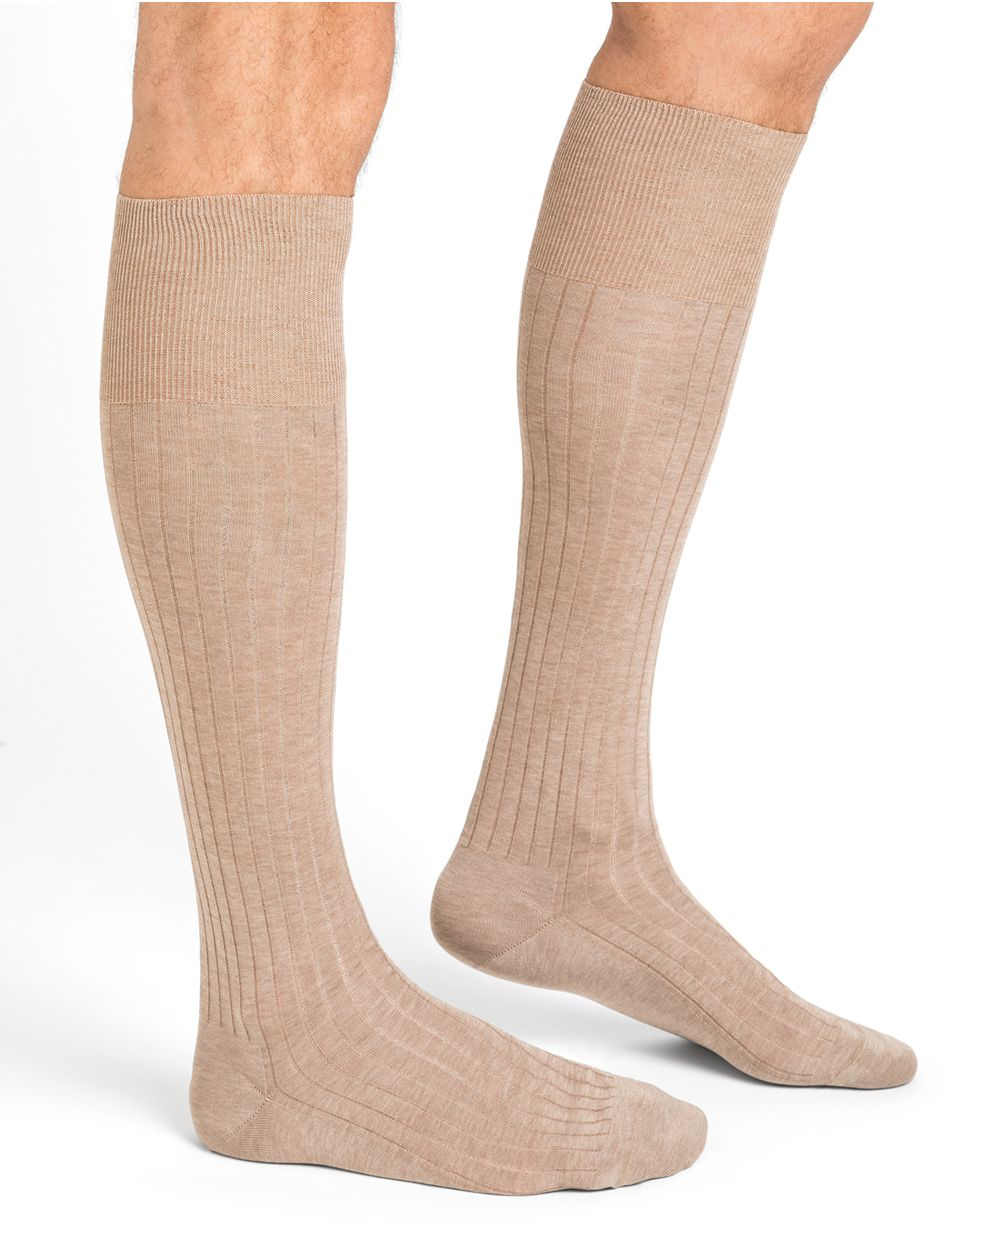 100% mercerised cotton knee-high socks